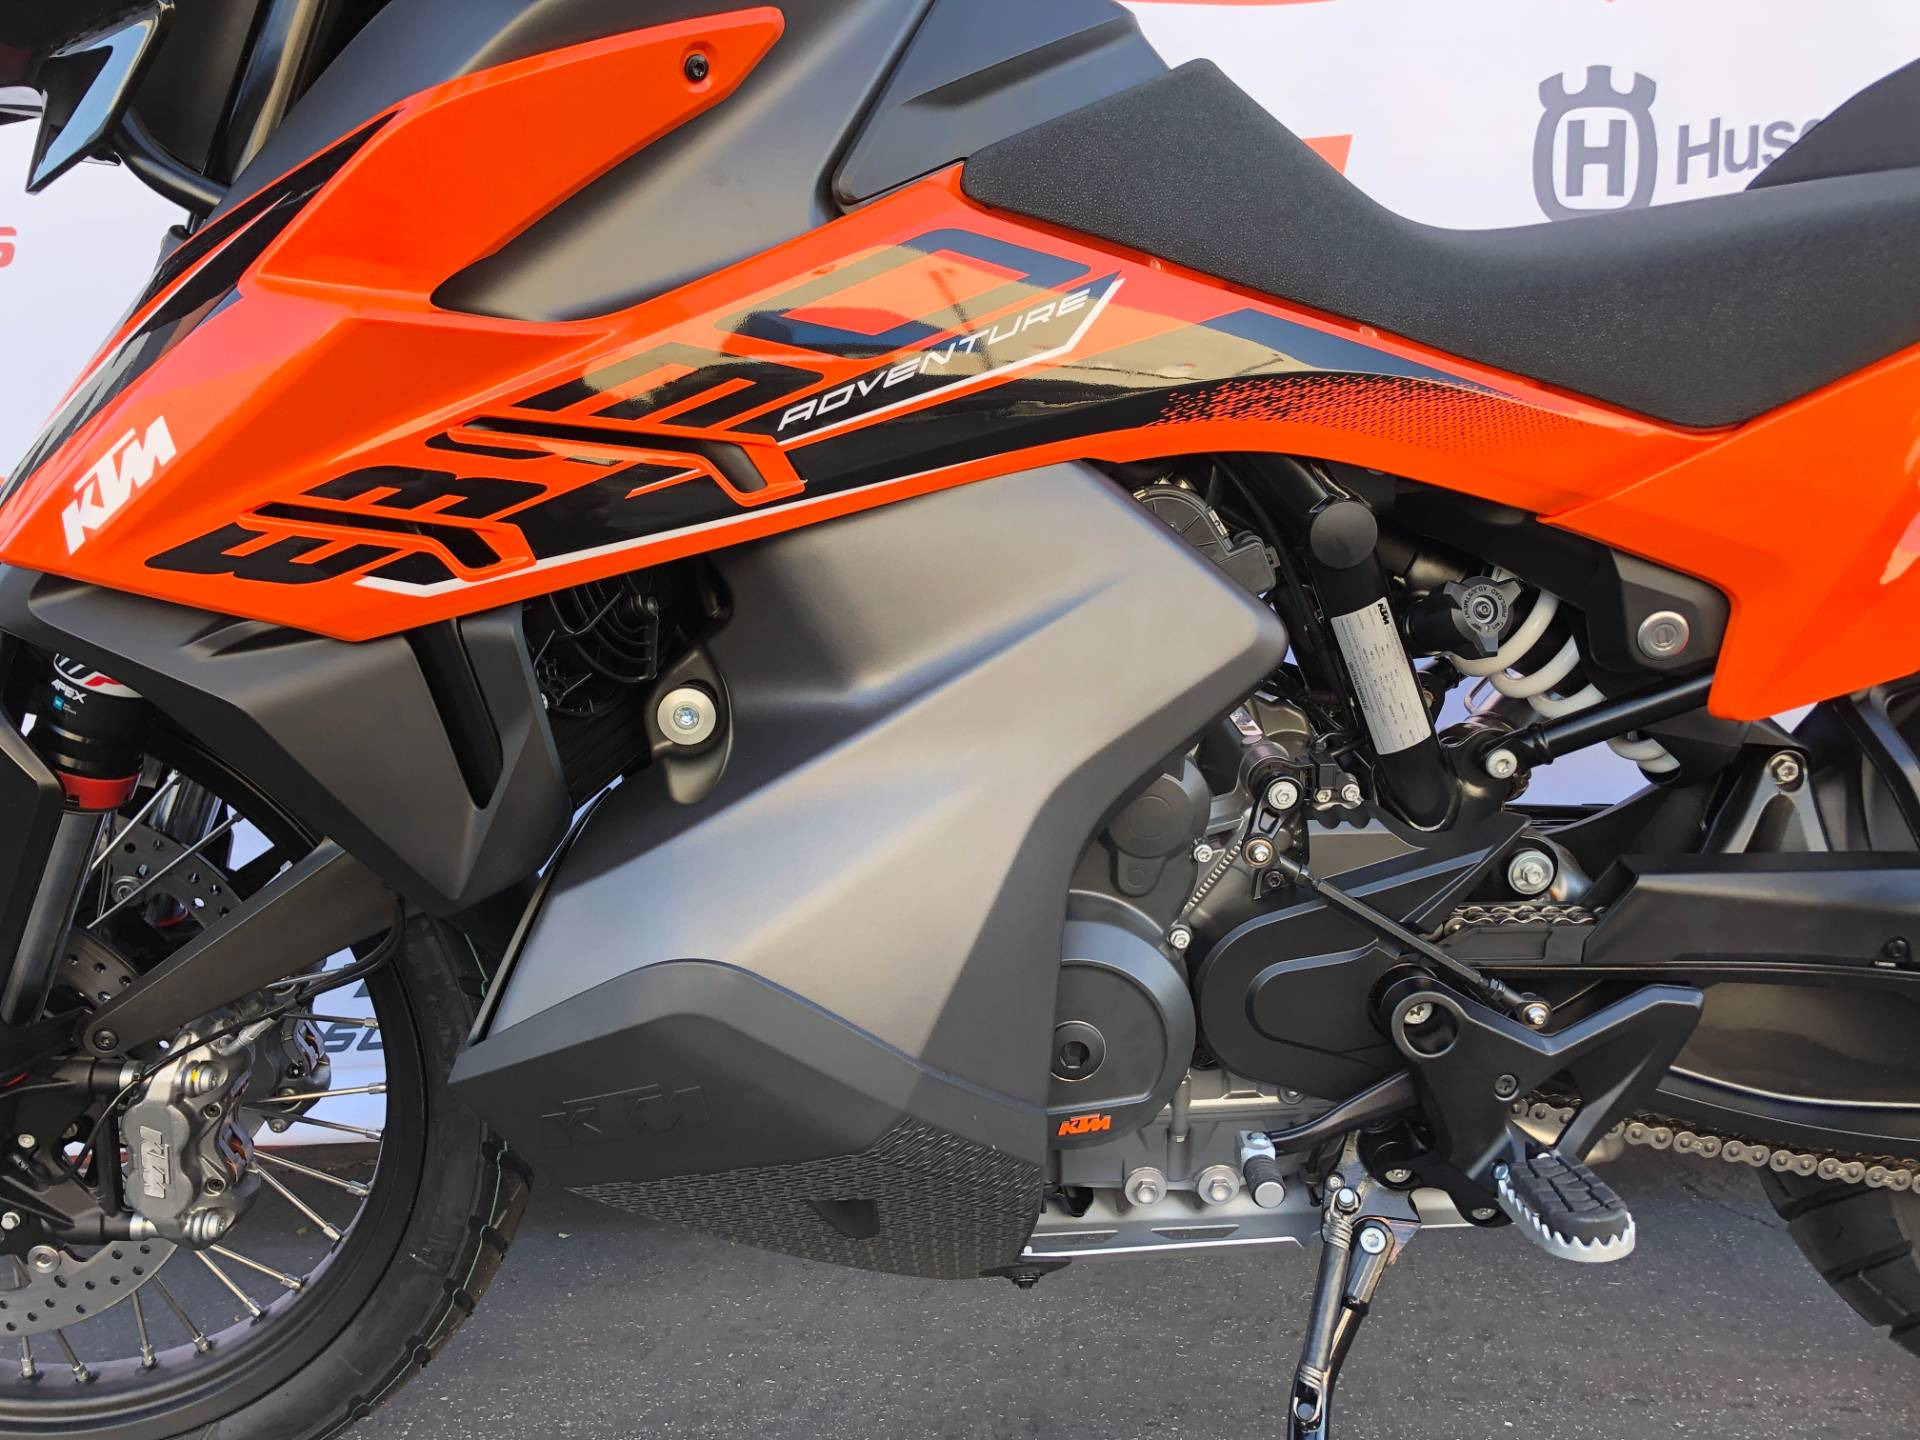 2021 KTM 890 Adventure in Costa Mesa, California - Photo 4